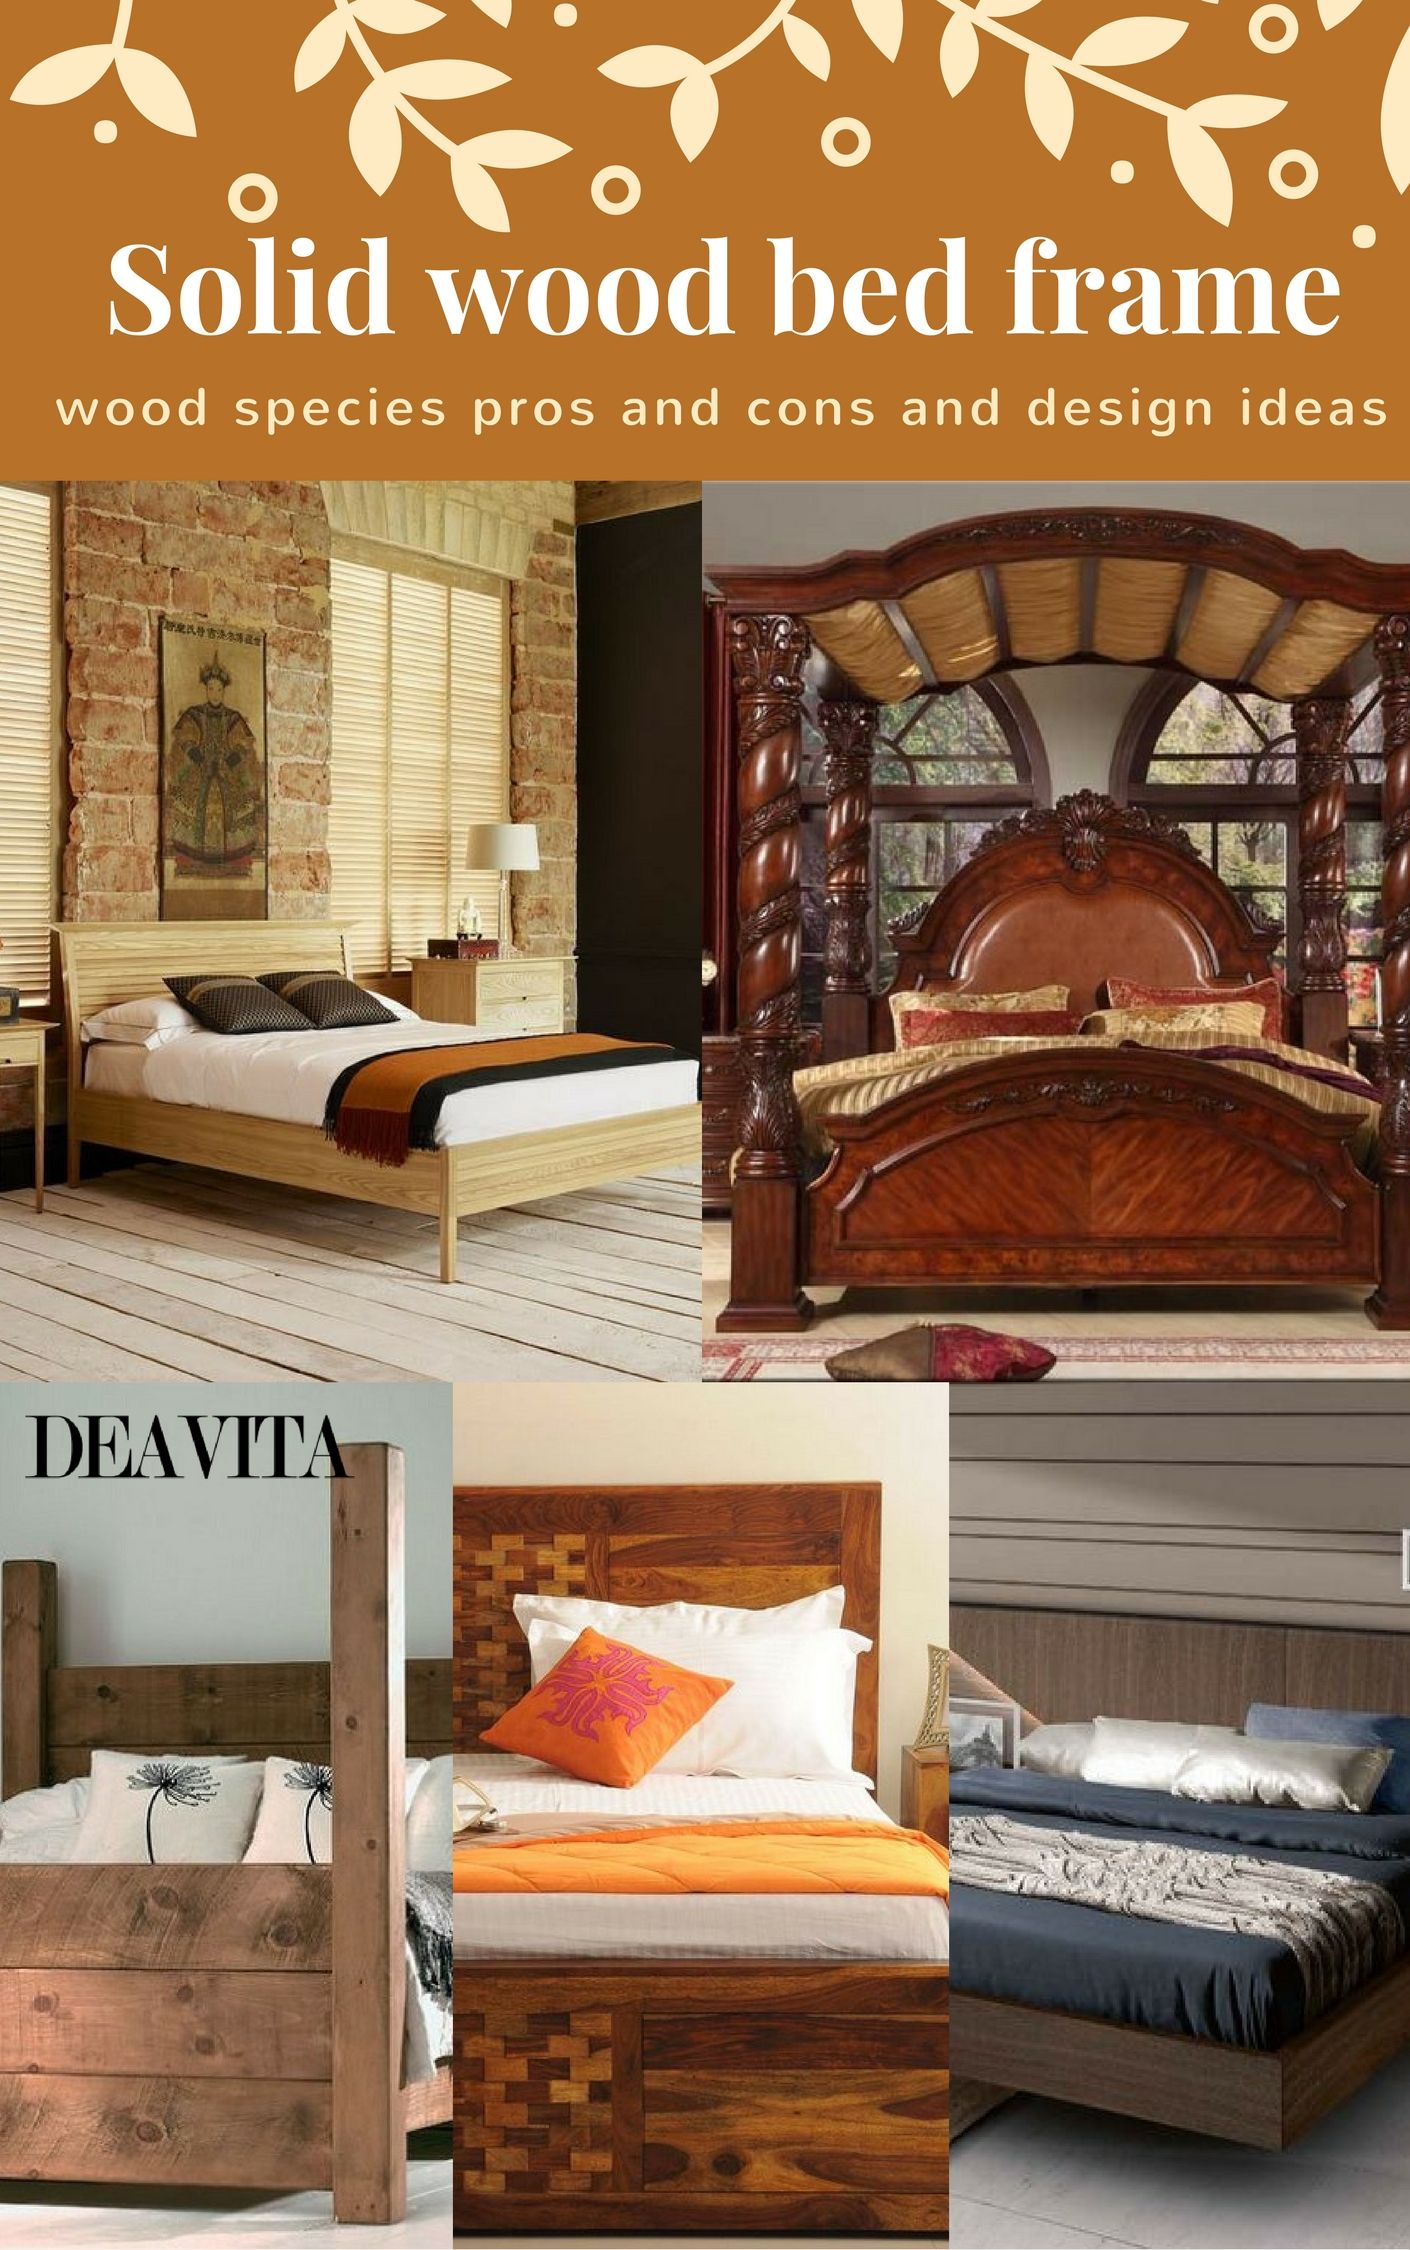 solid wood bed frame offers many advantages to any bedroom interior